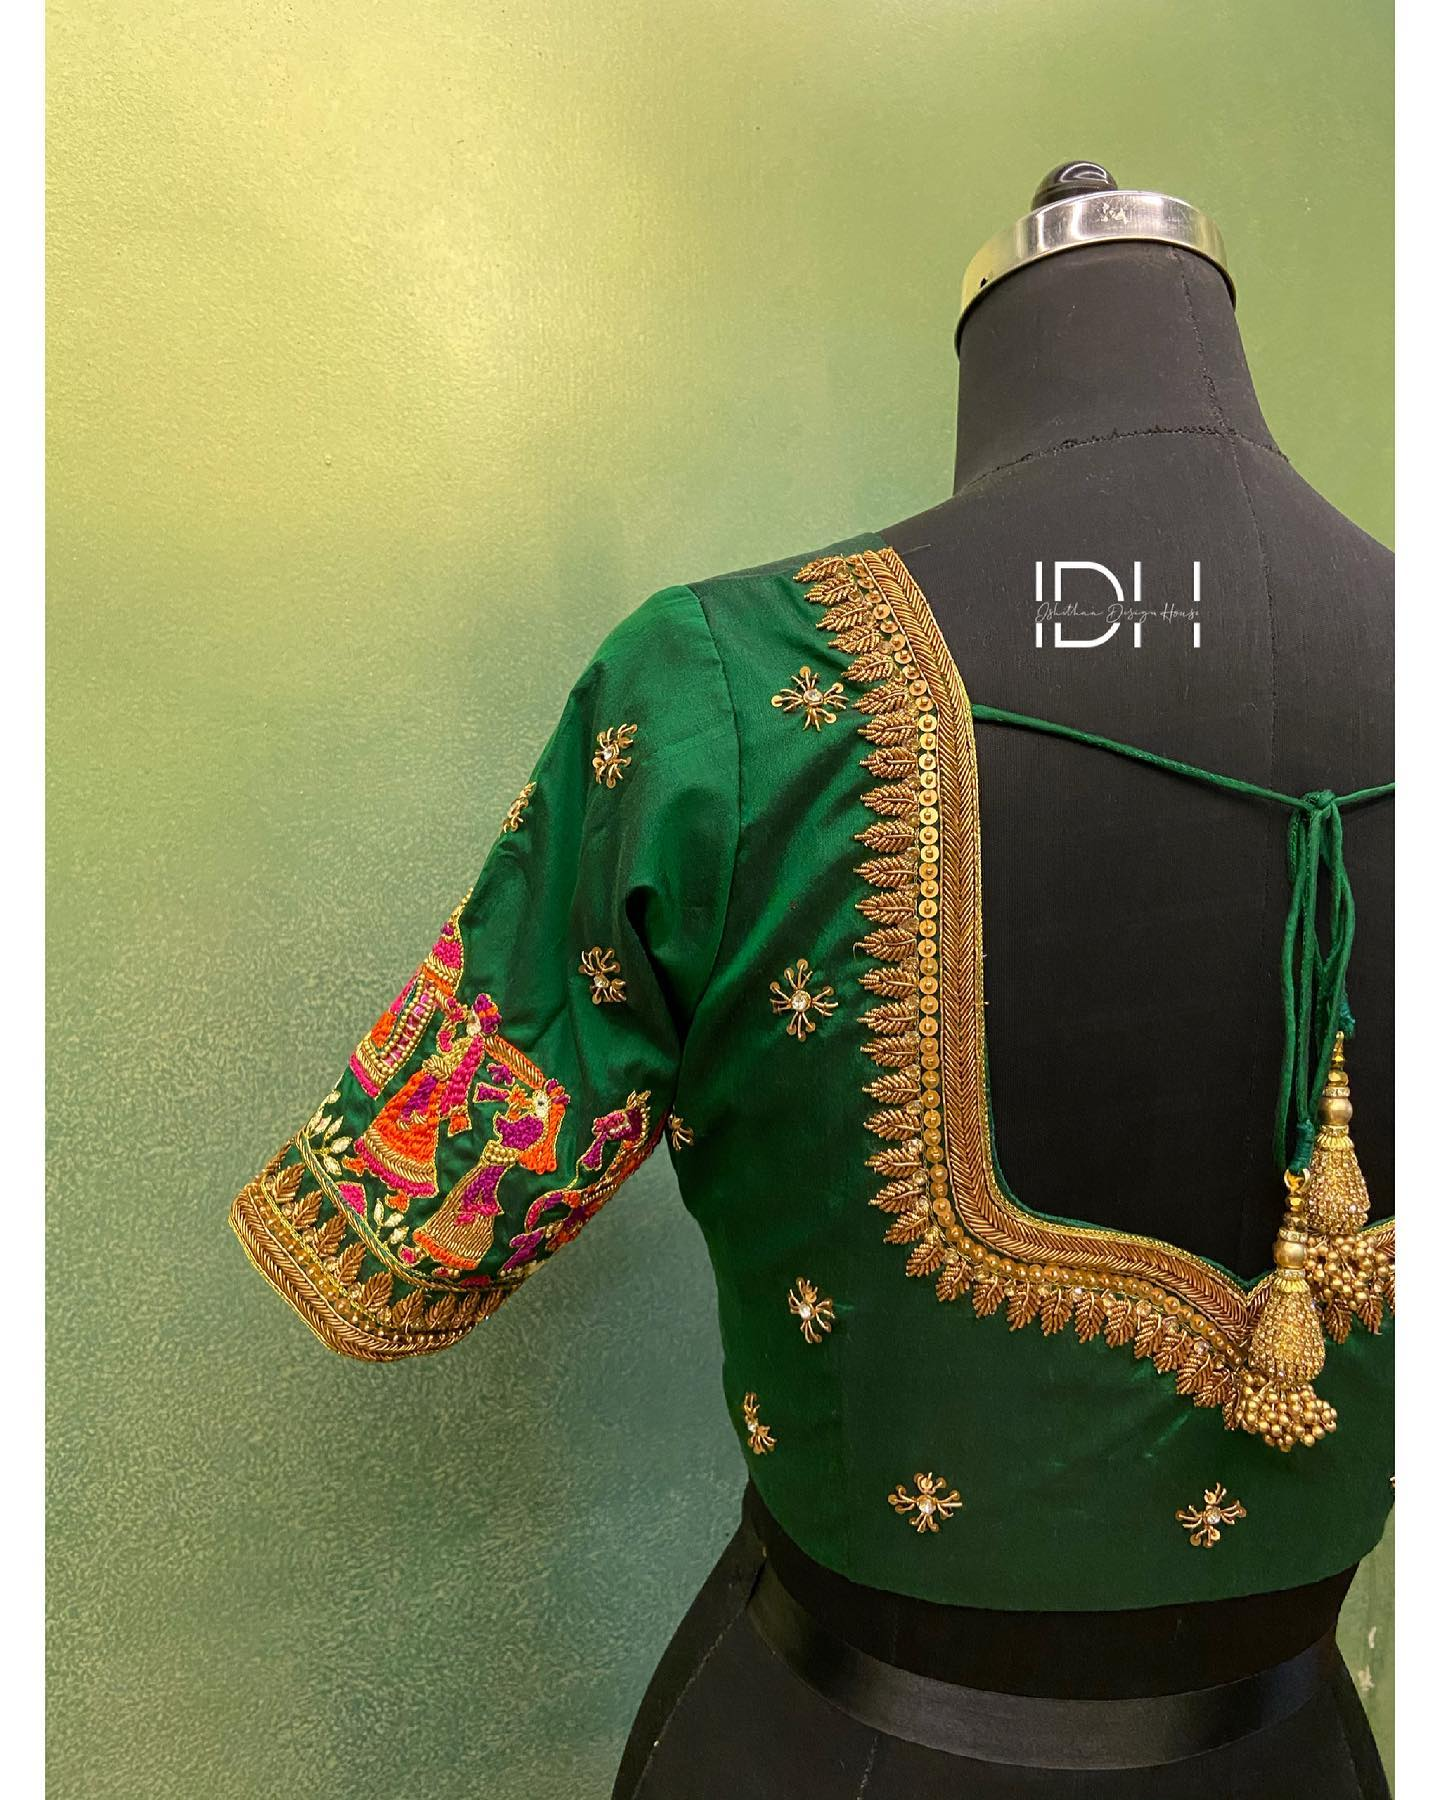 Never getting over this !  . . Baraat concept bridal blouse. Stunning bottle green color designer blouse with baraat design hand embroidery thread maggam work on sleeves. Blouse with zardosi  work on neckline. 2021-03-11